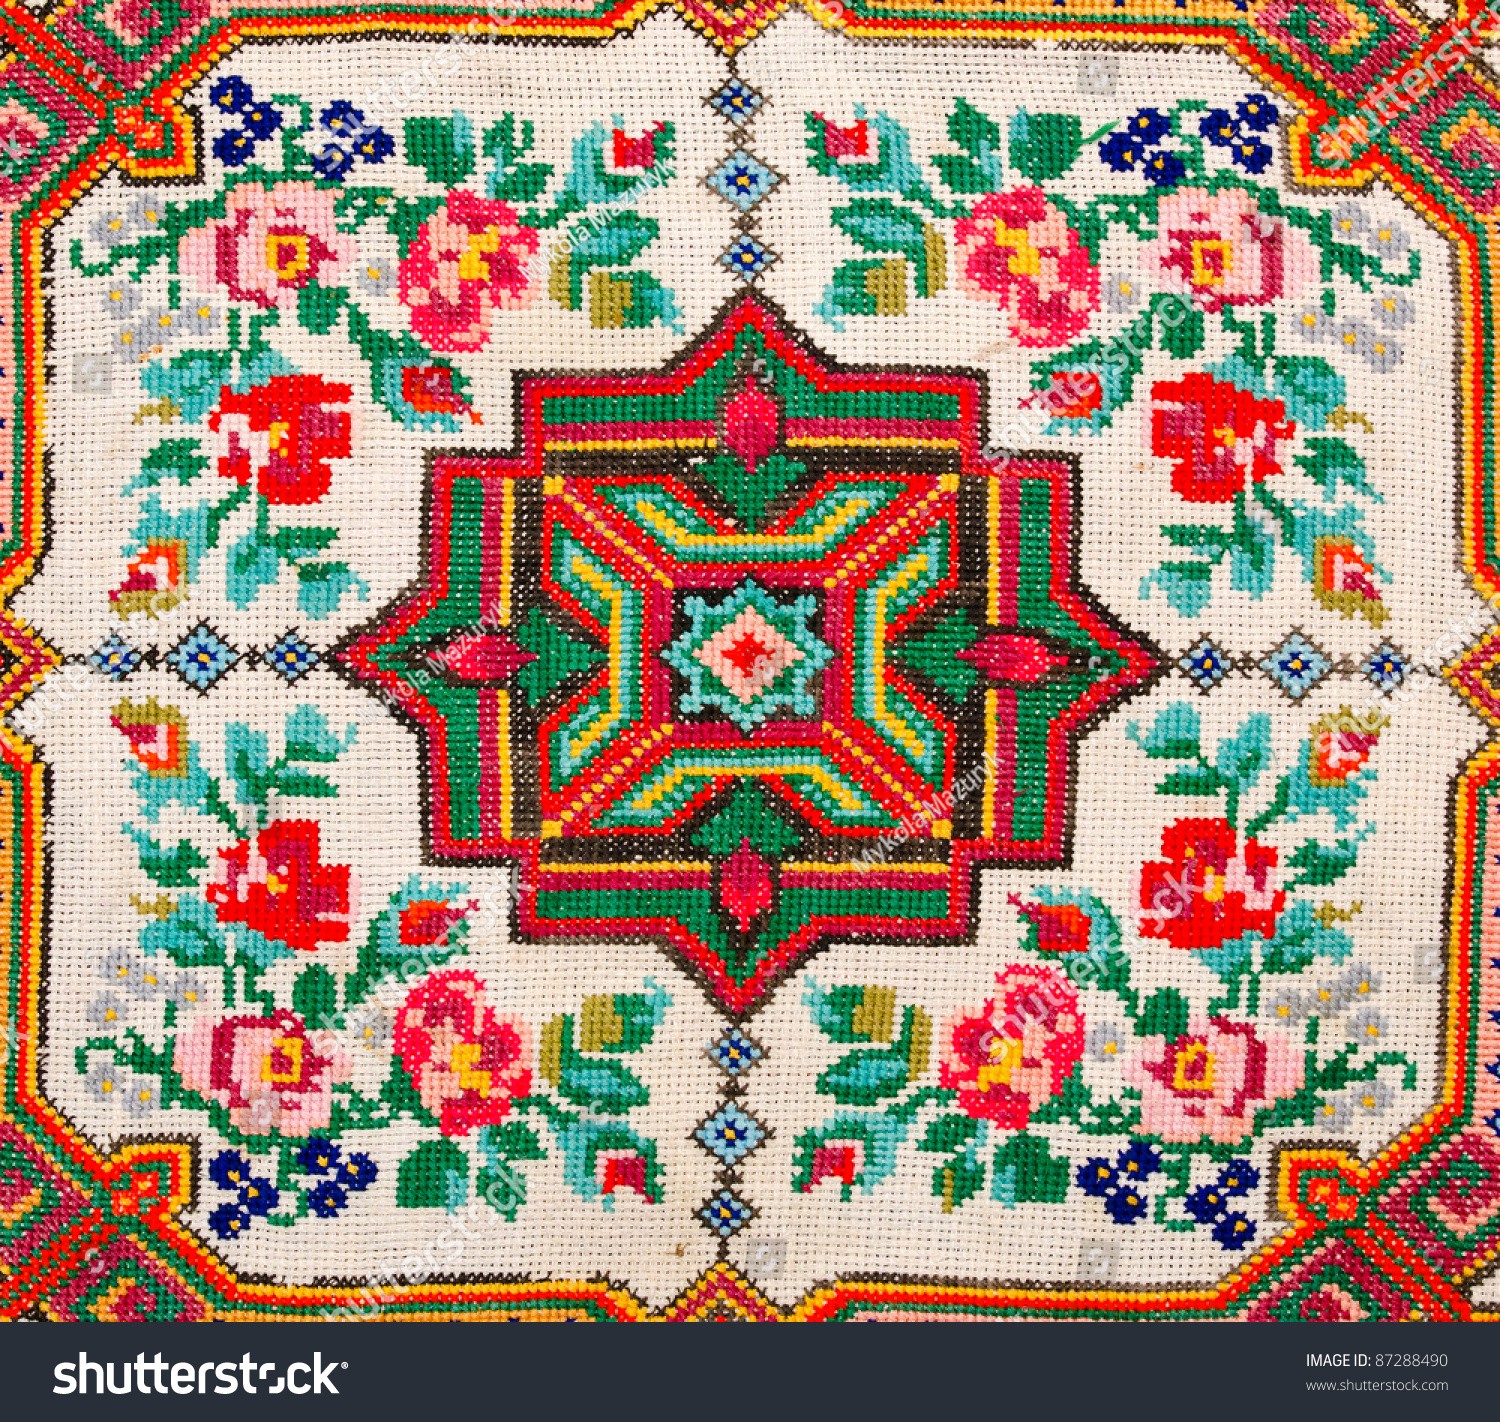 Embroidered good by cross stitch pattern ukrainian ethnic